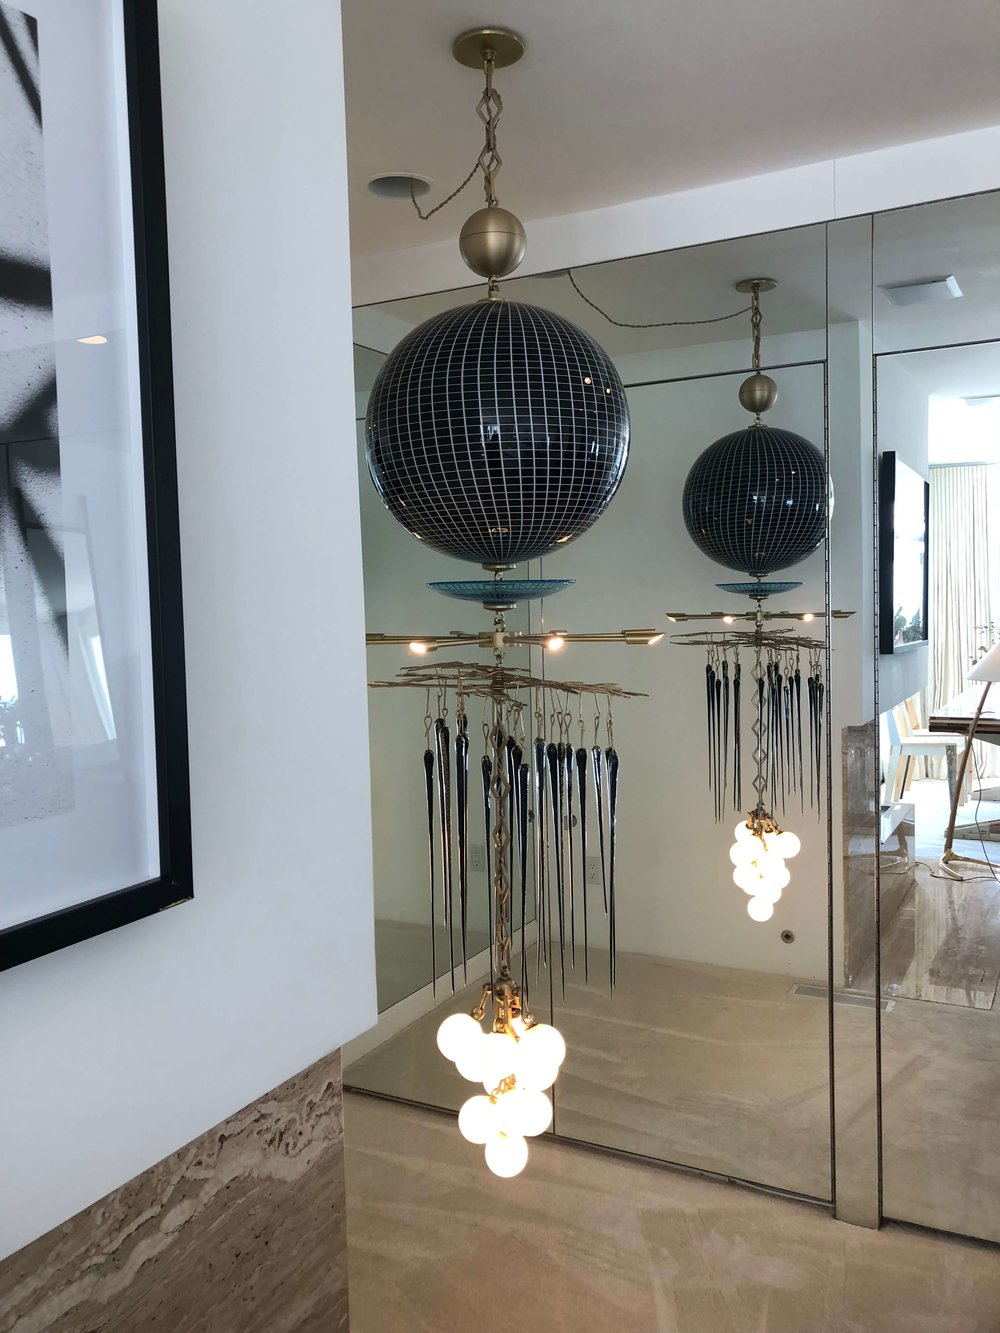 Statement lighting #statementlighting #chandelier